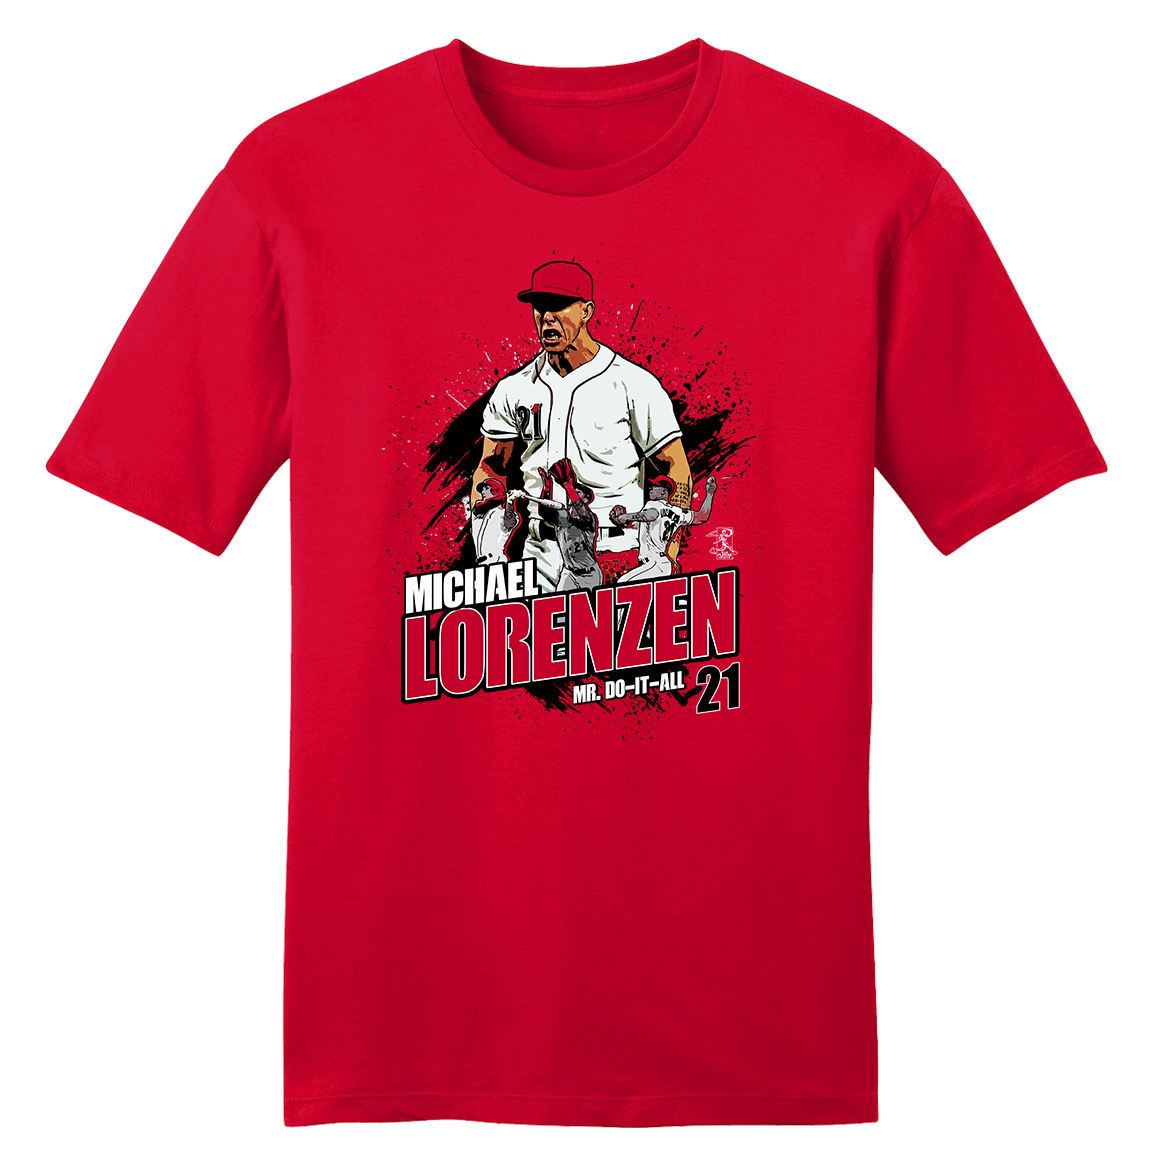 Official Michael Lorenzen MLBPA Tee - Cincy Shirts